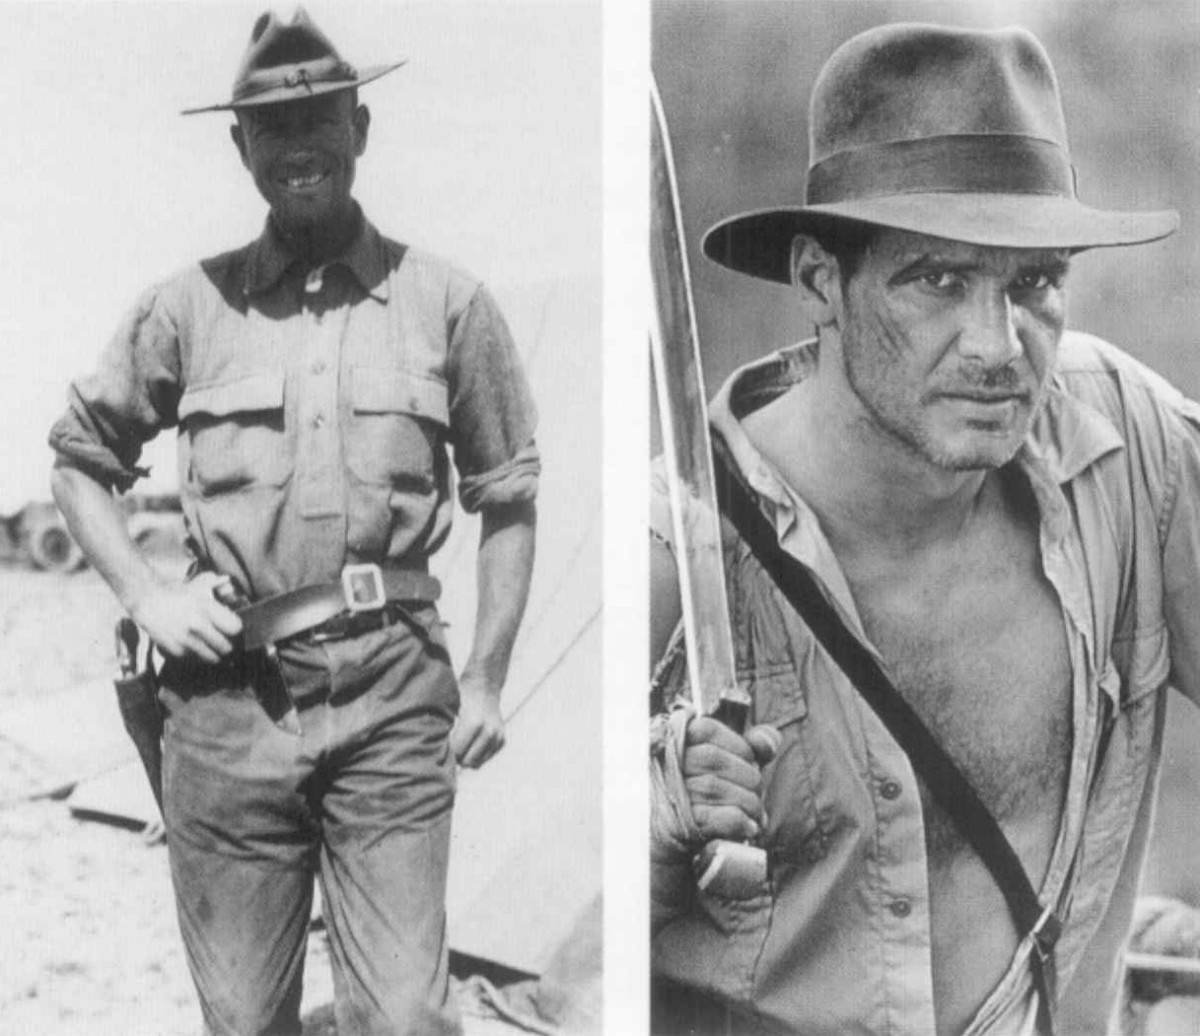 Indiana Jones May Have Been Inspired by the Adventures of Roy Chapman Andrews